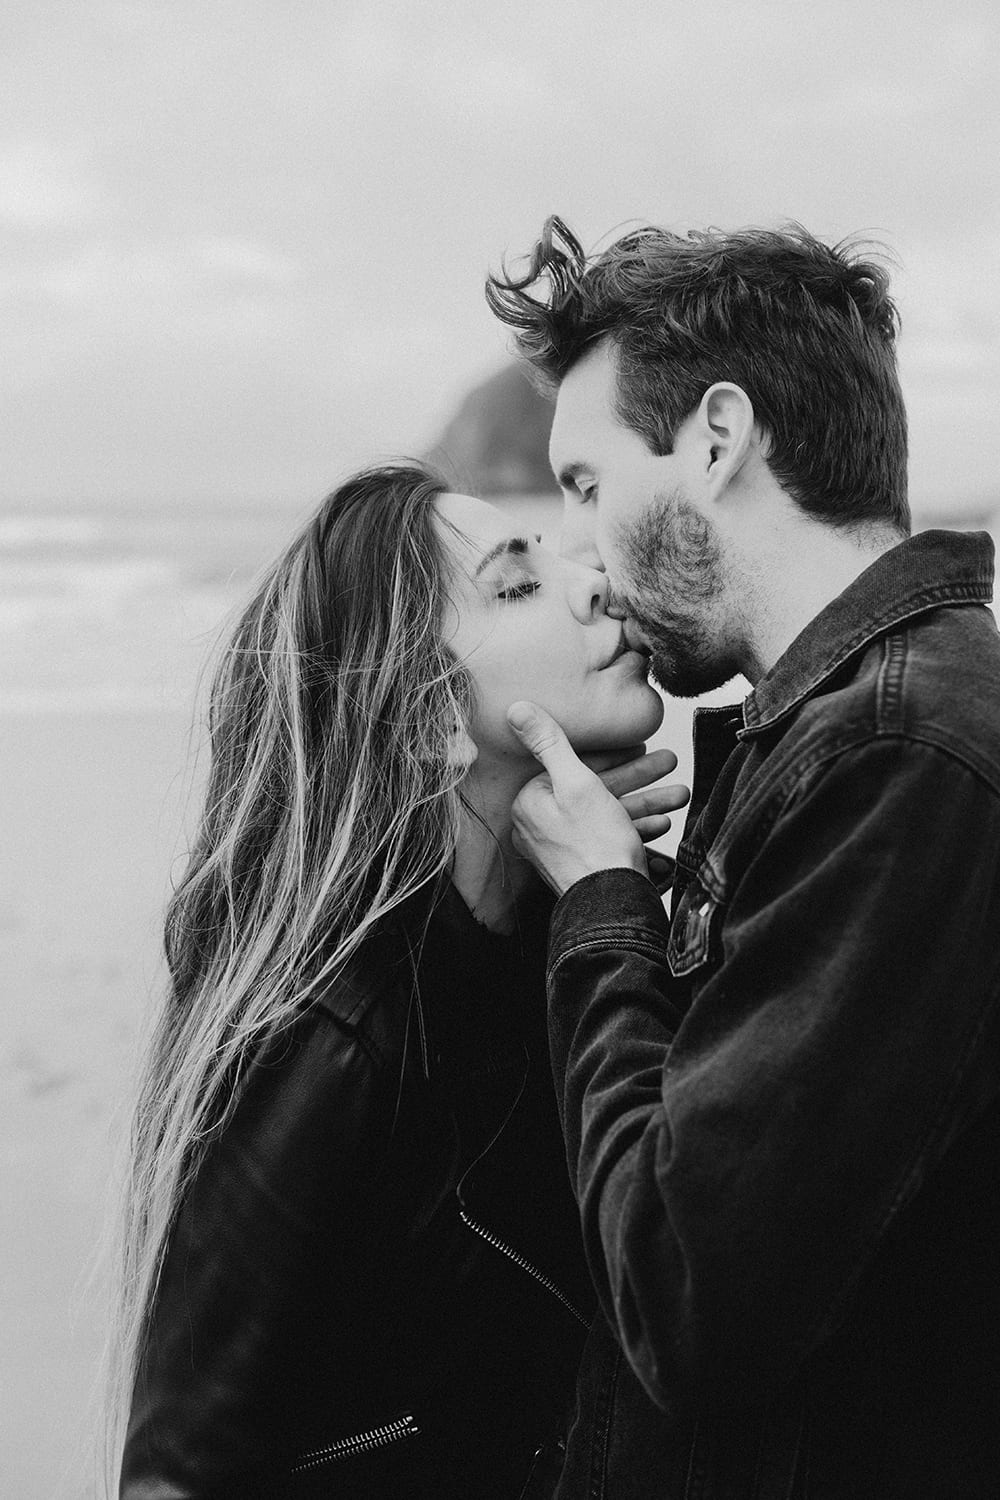 guy kissing girl in black and white photo